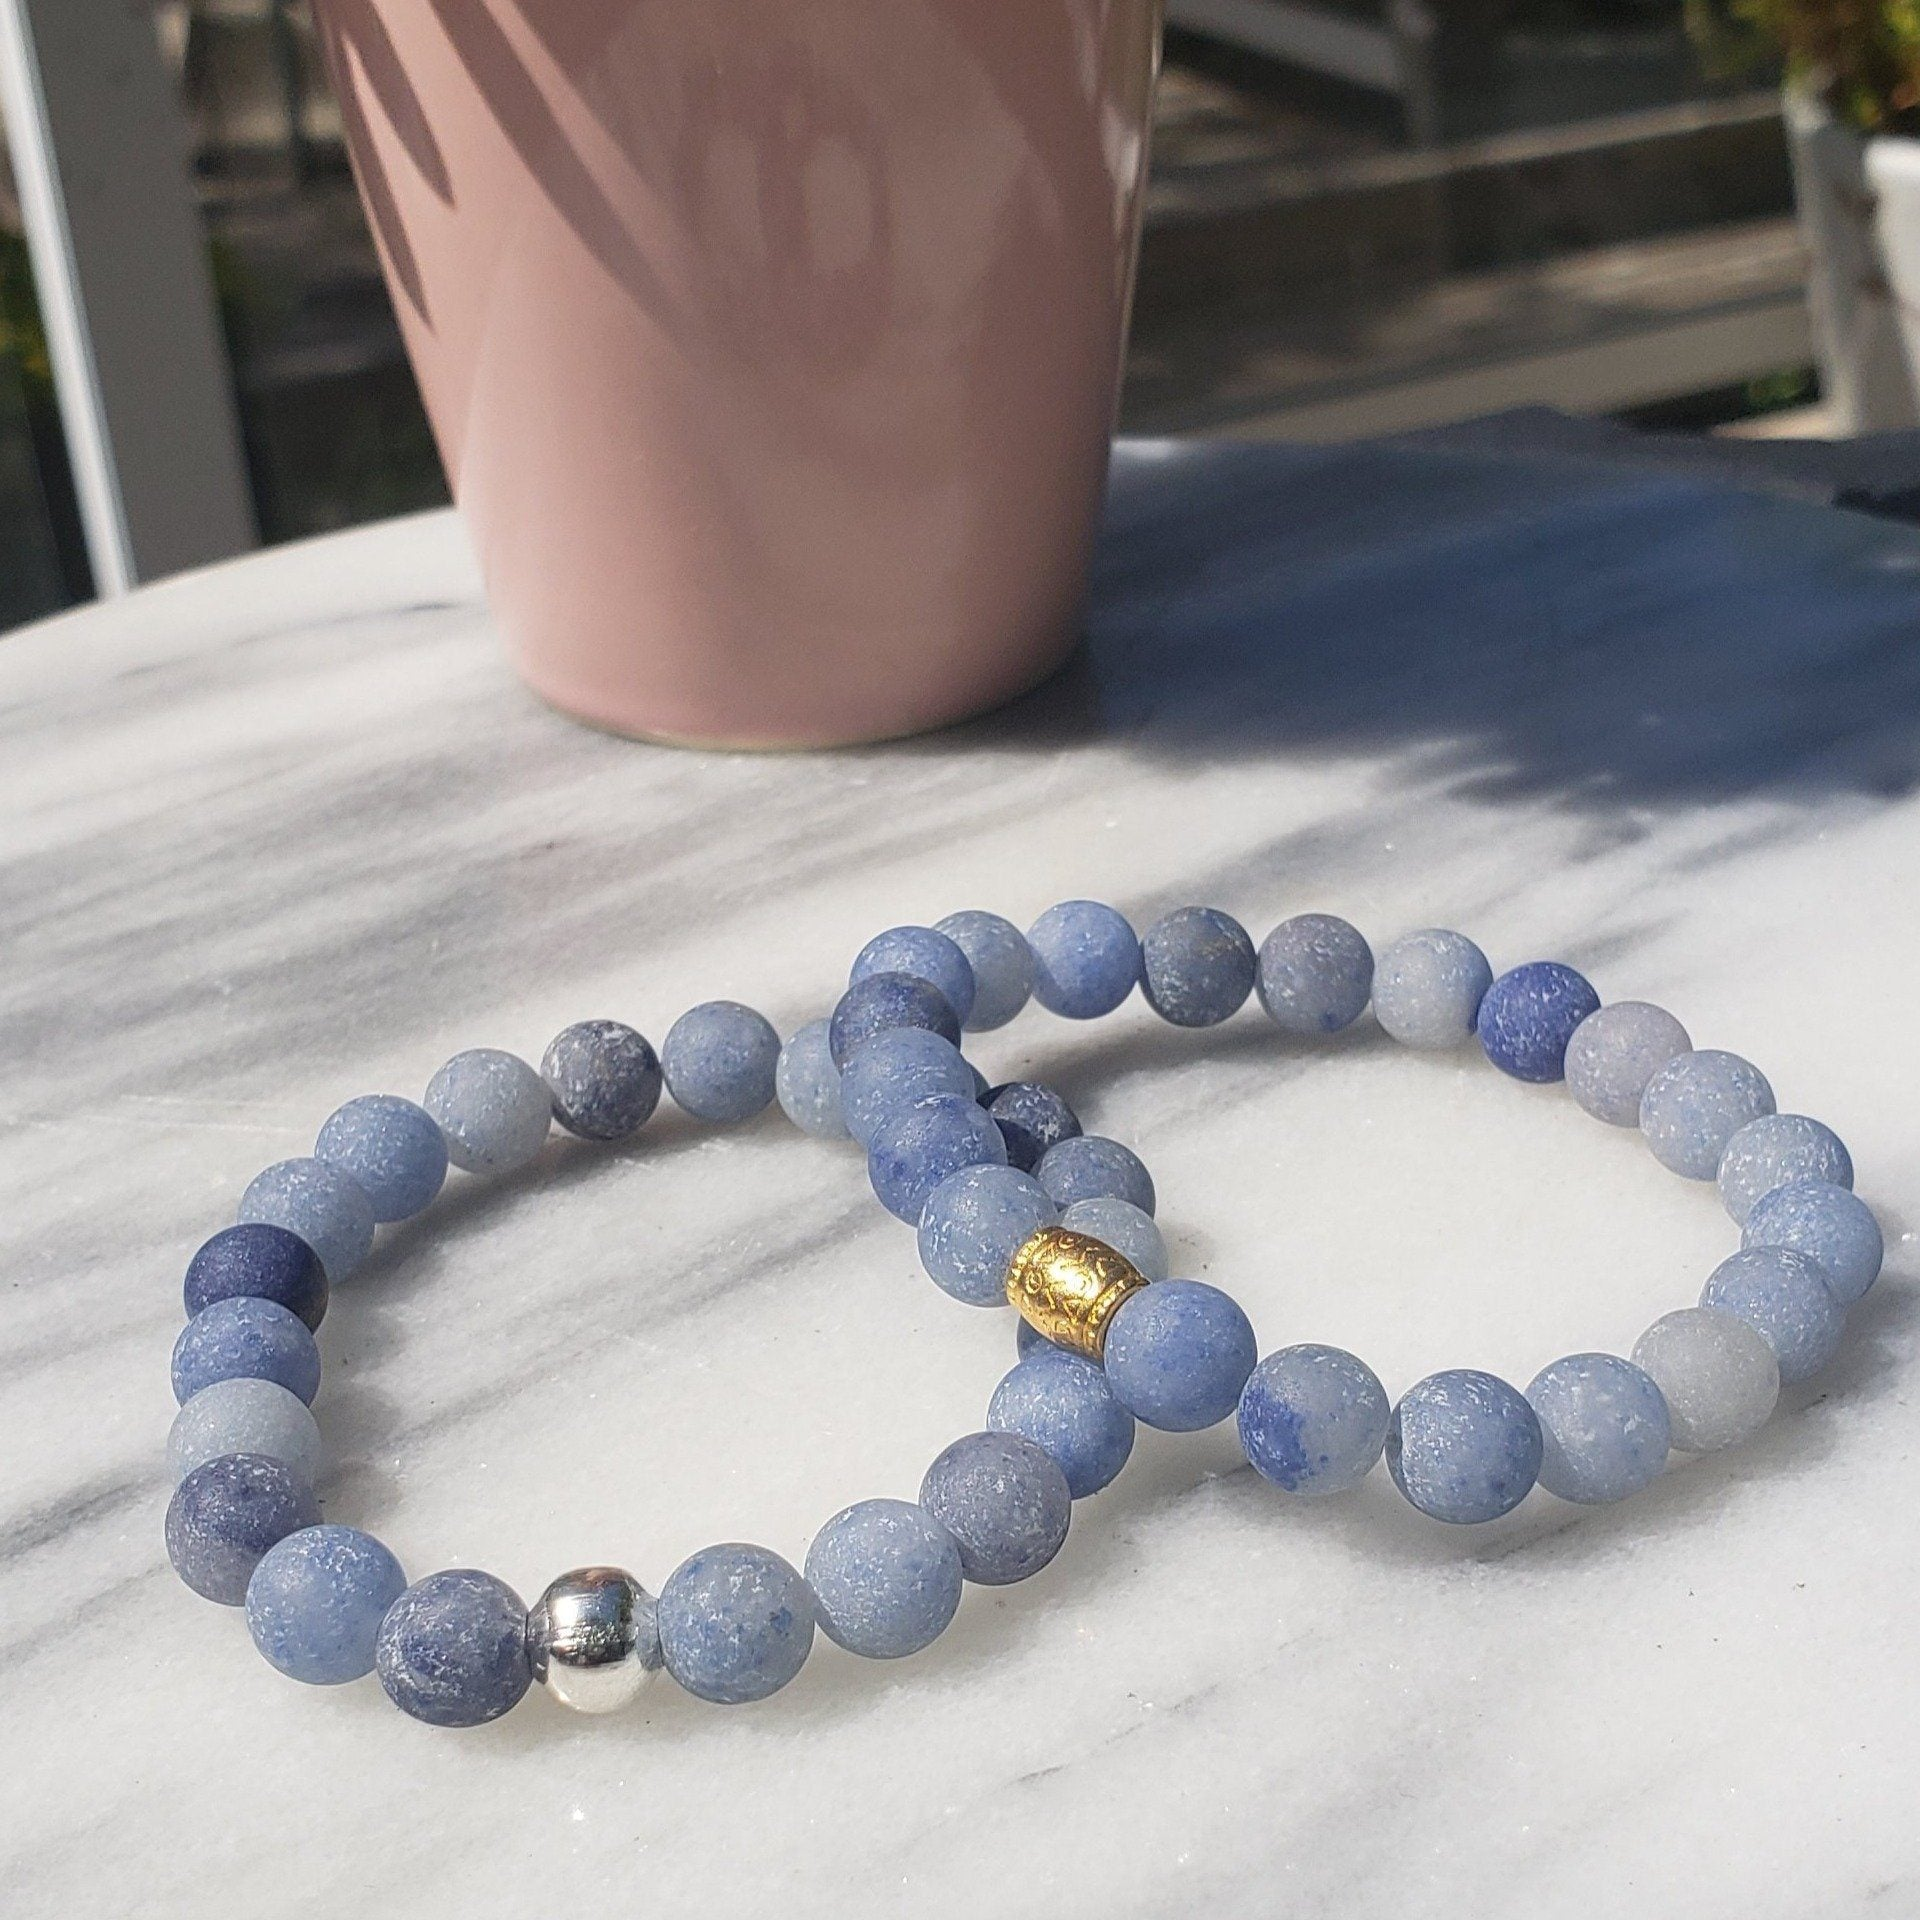 Calm, Positivity, Self-discipline | Beaded Stretch Bracelet | Matte Blue Aventurine Gemstone Bracelets Alora Boutique